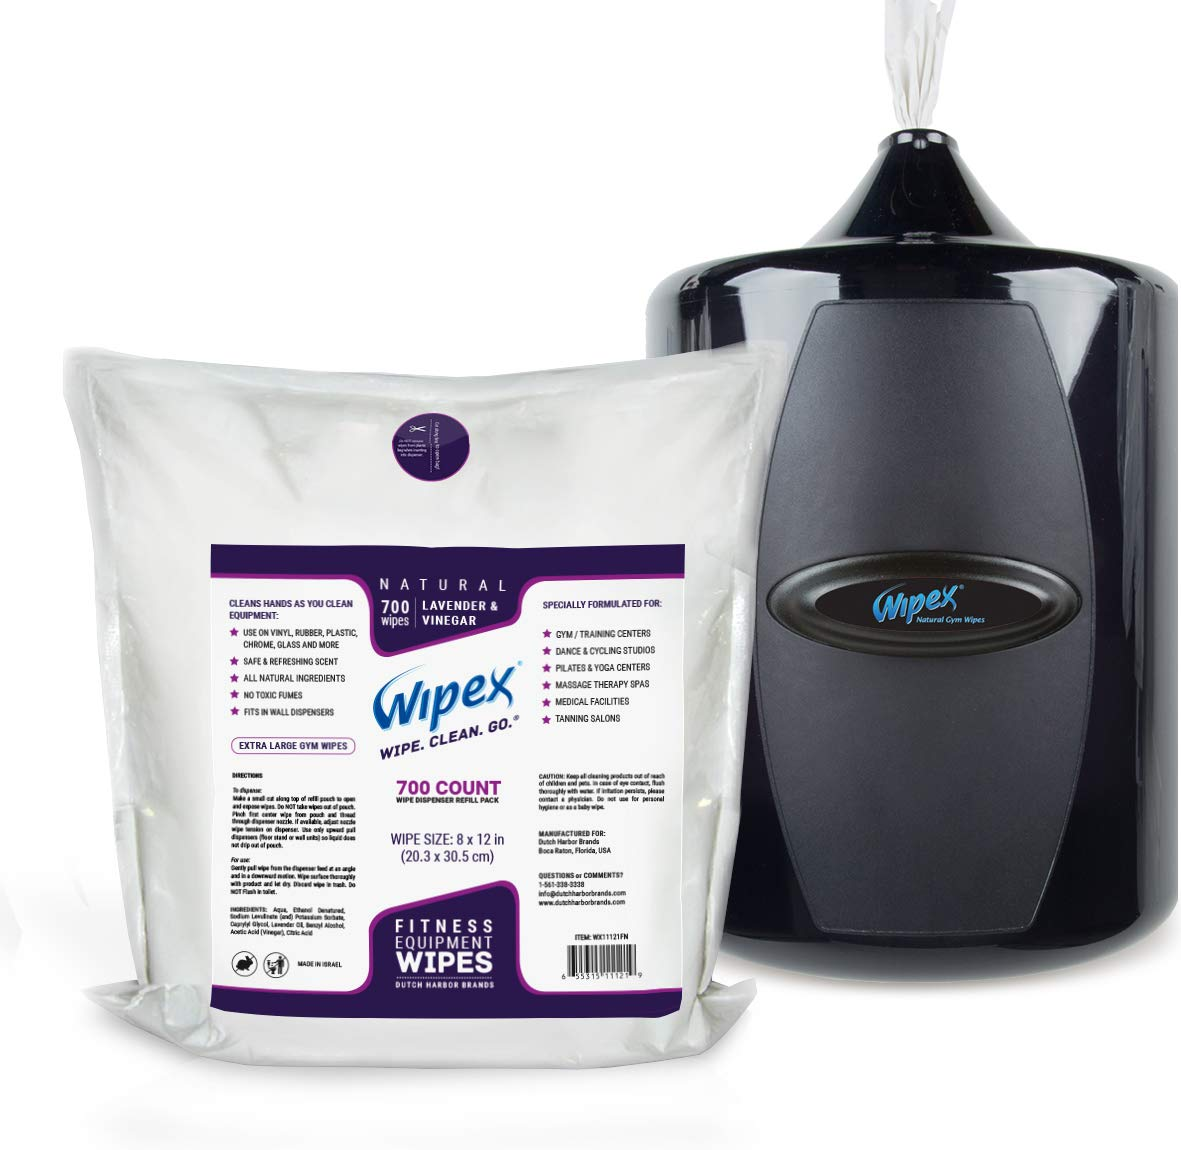 Wipex Gym & Fitness Wipes Refill Pack 700 Large Natural Wipes With Vinegar & Lavender Oil (1 Refill) by Wipex (Image #2)